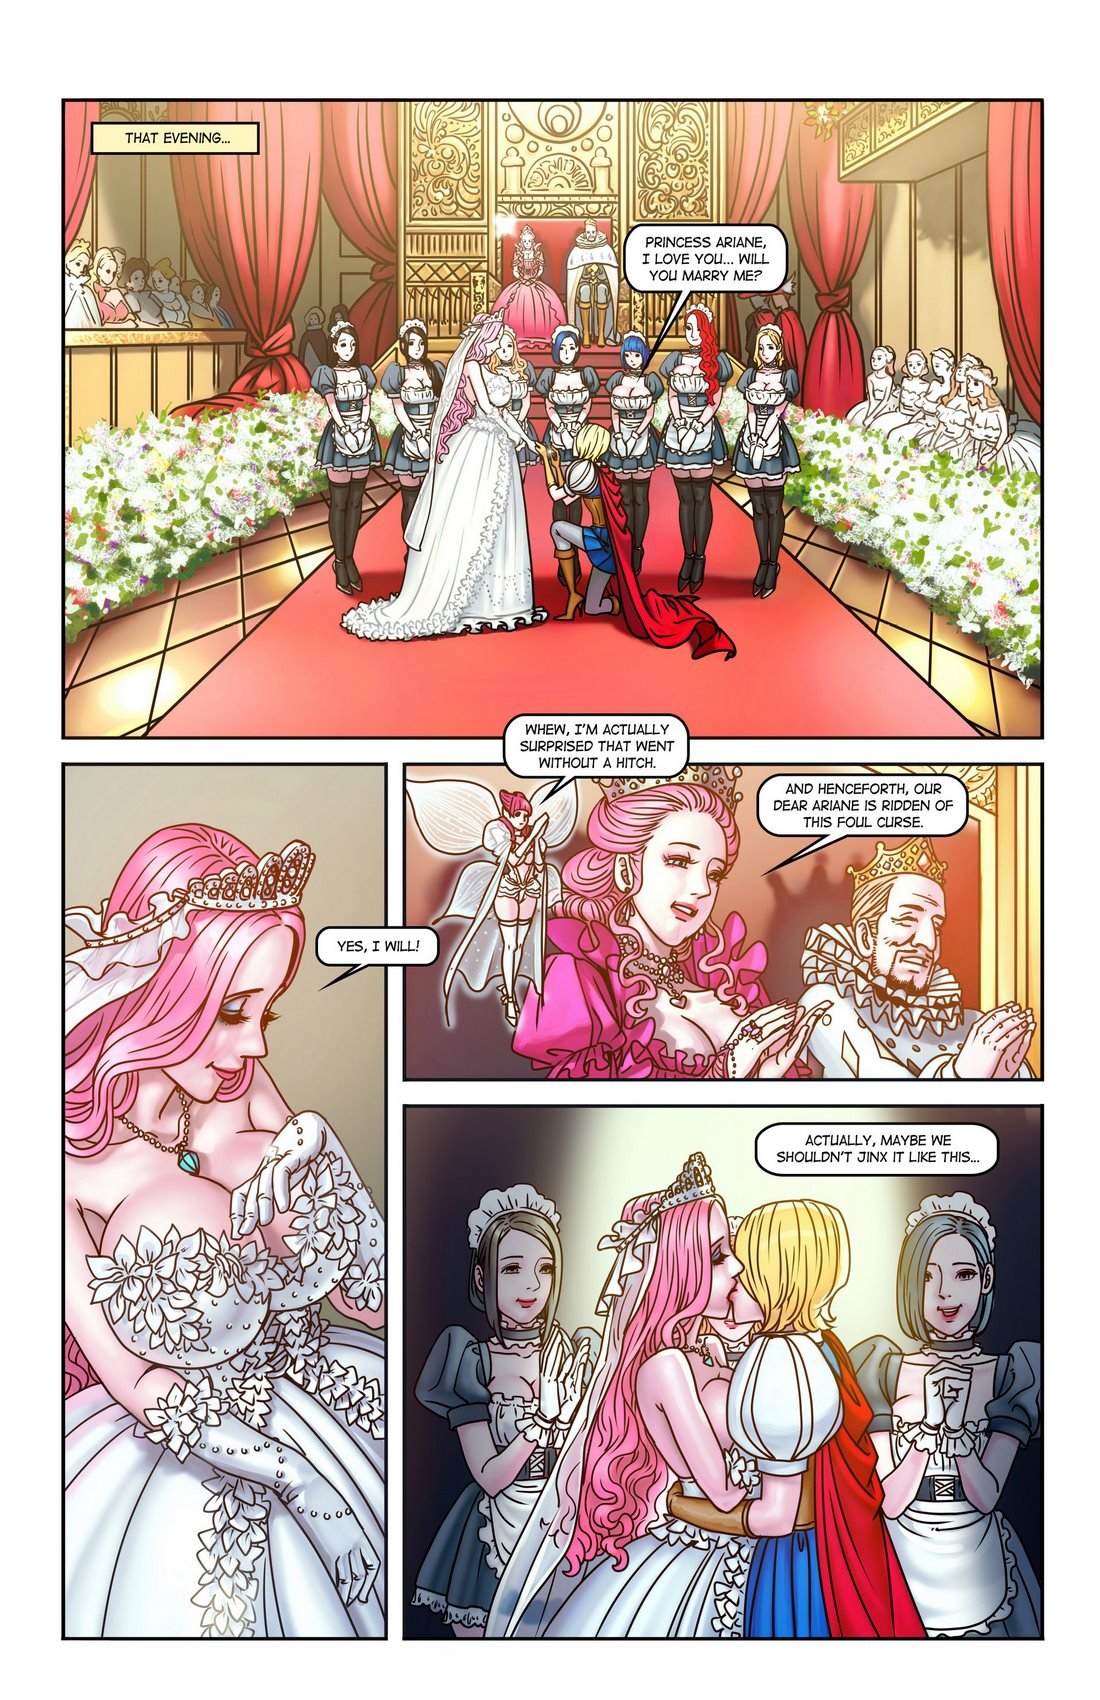 ExpansionFan – Beauty and the Bust Issue 2